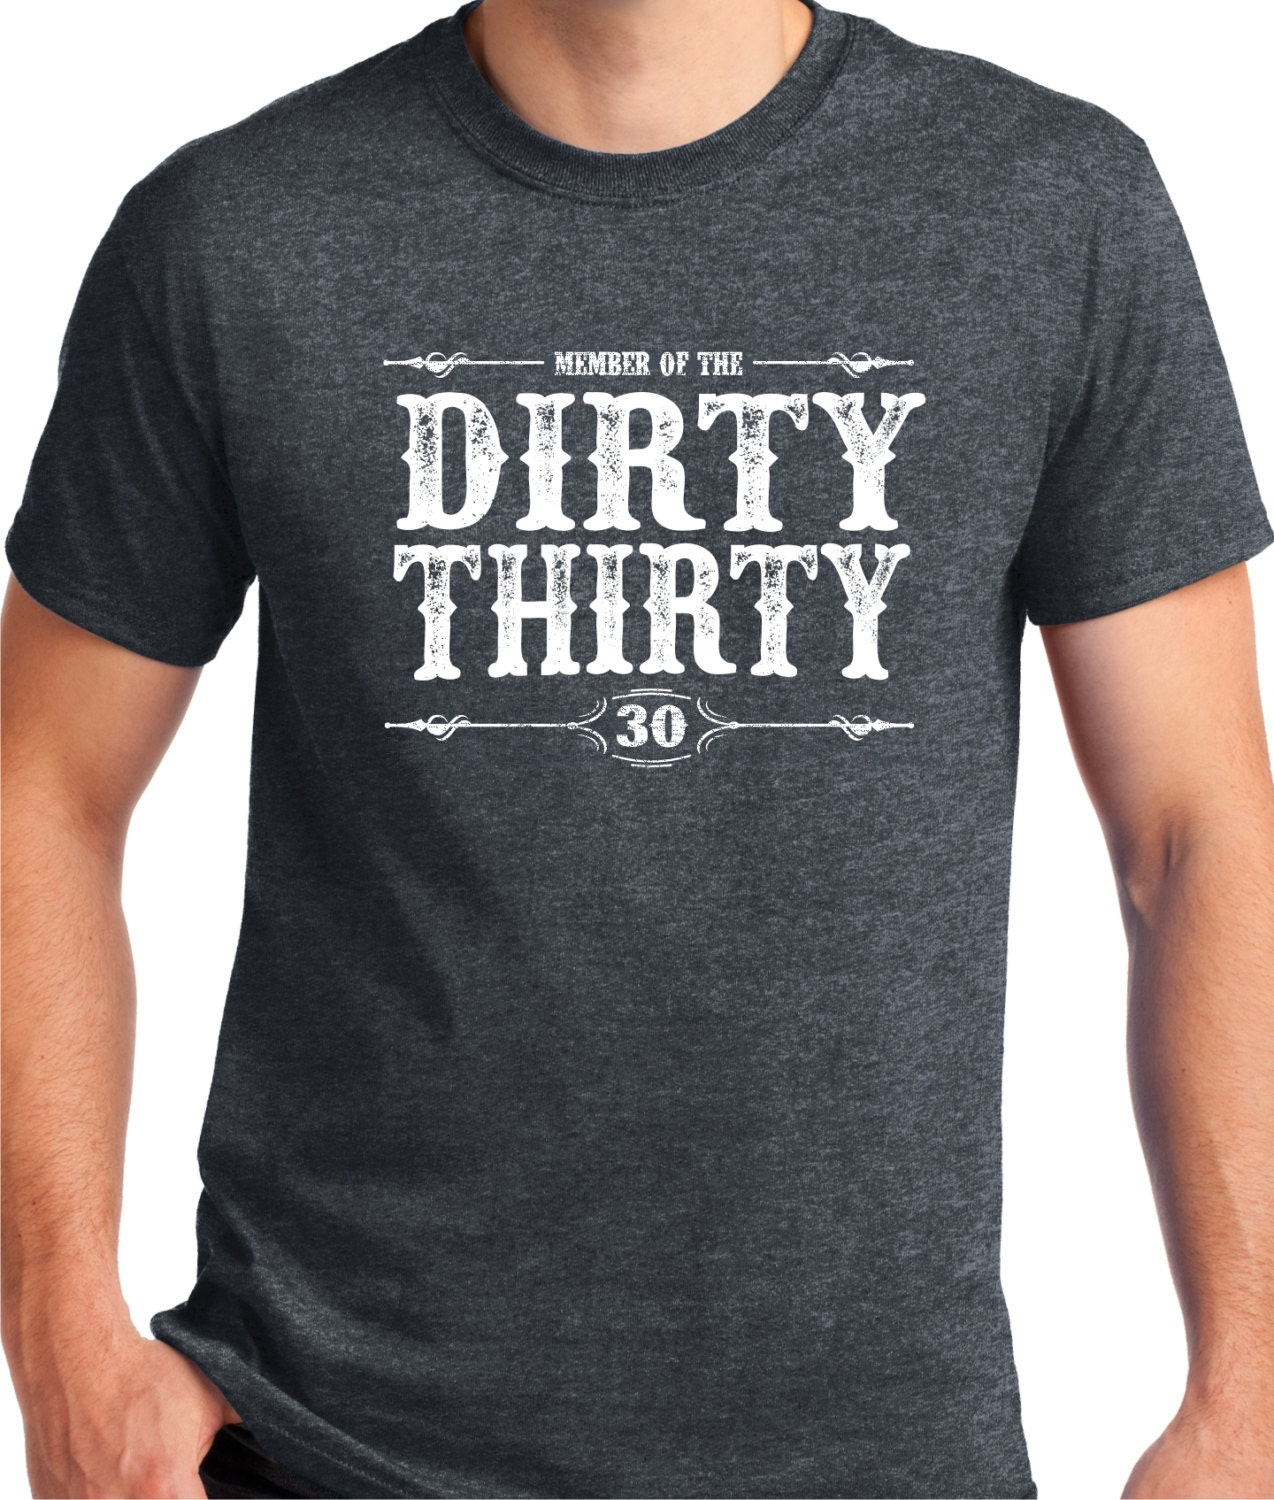 dirty thirty shirt turning 30 30 years old t shirt gift. Black Bedroom Furniture Sets. Home Design Ideas